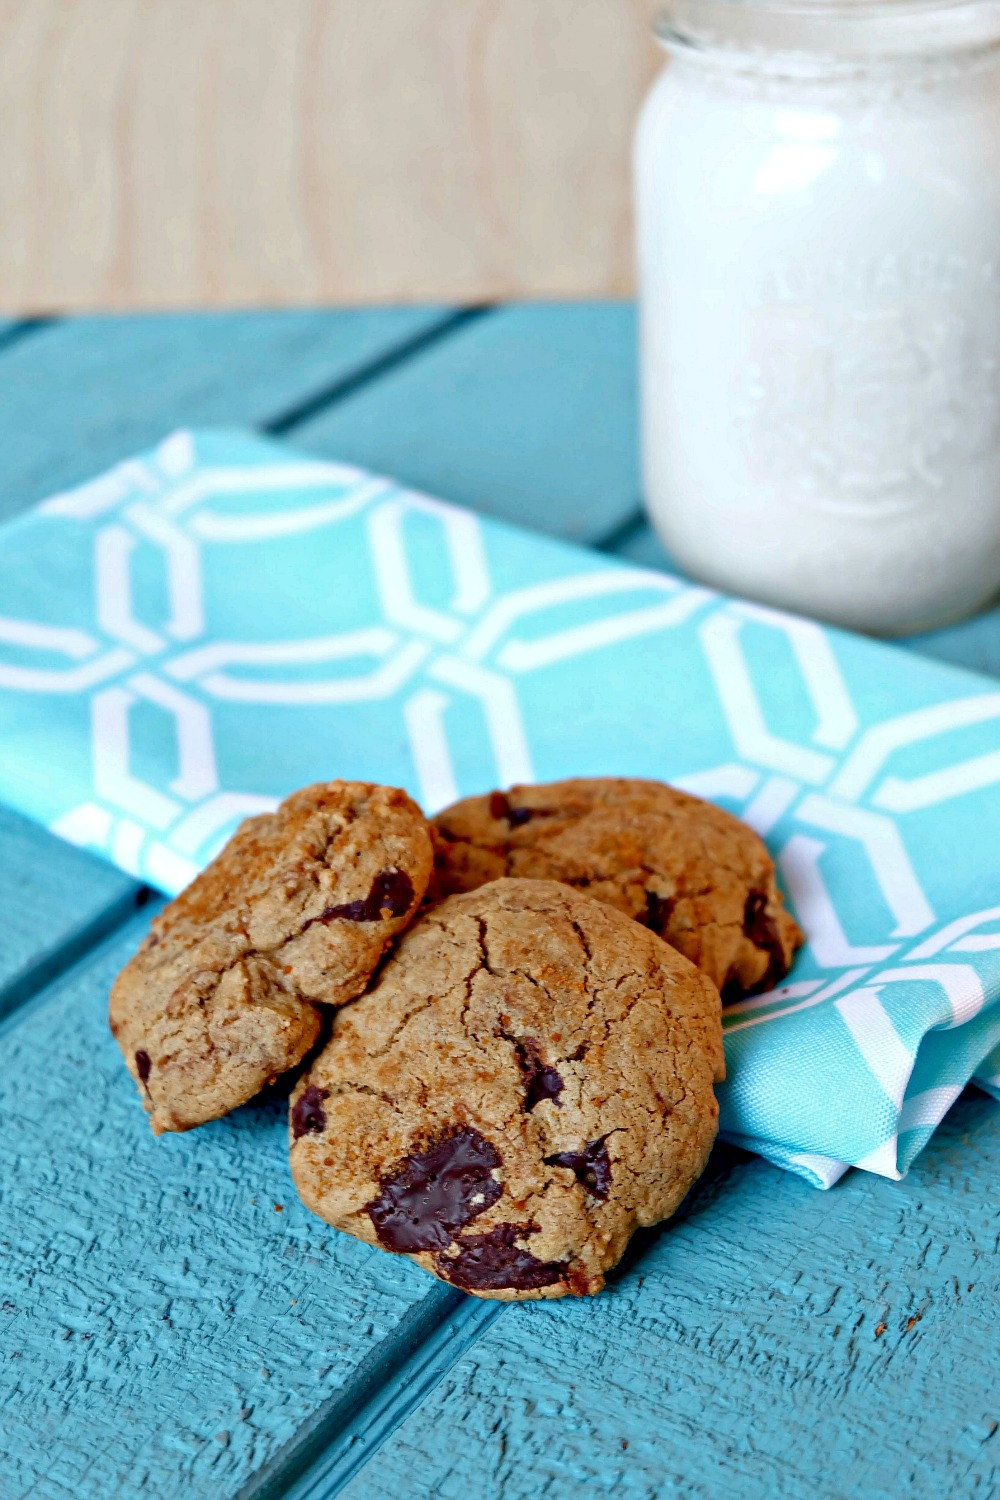 Gluten Free Ginger Chocolate Cookies